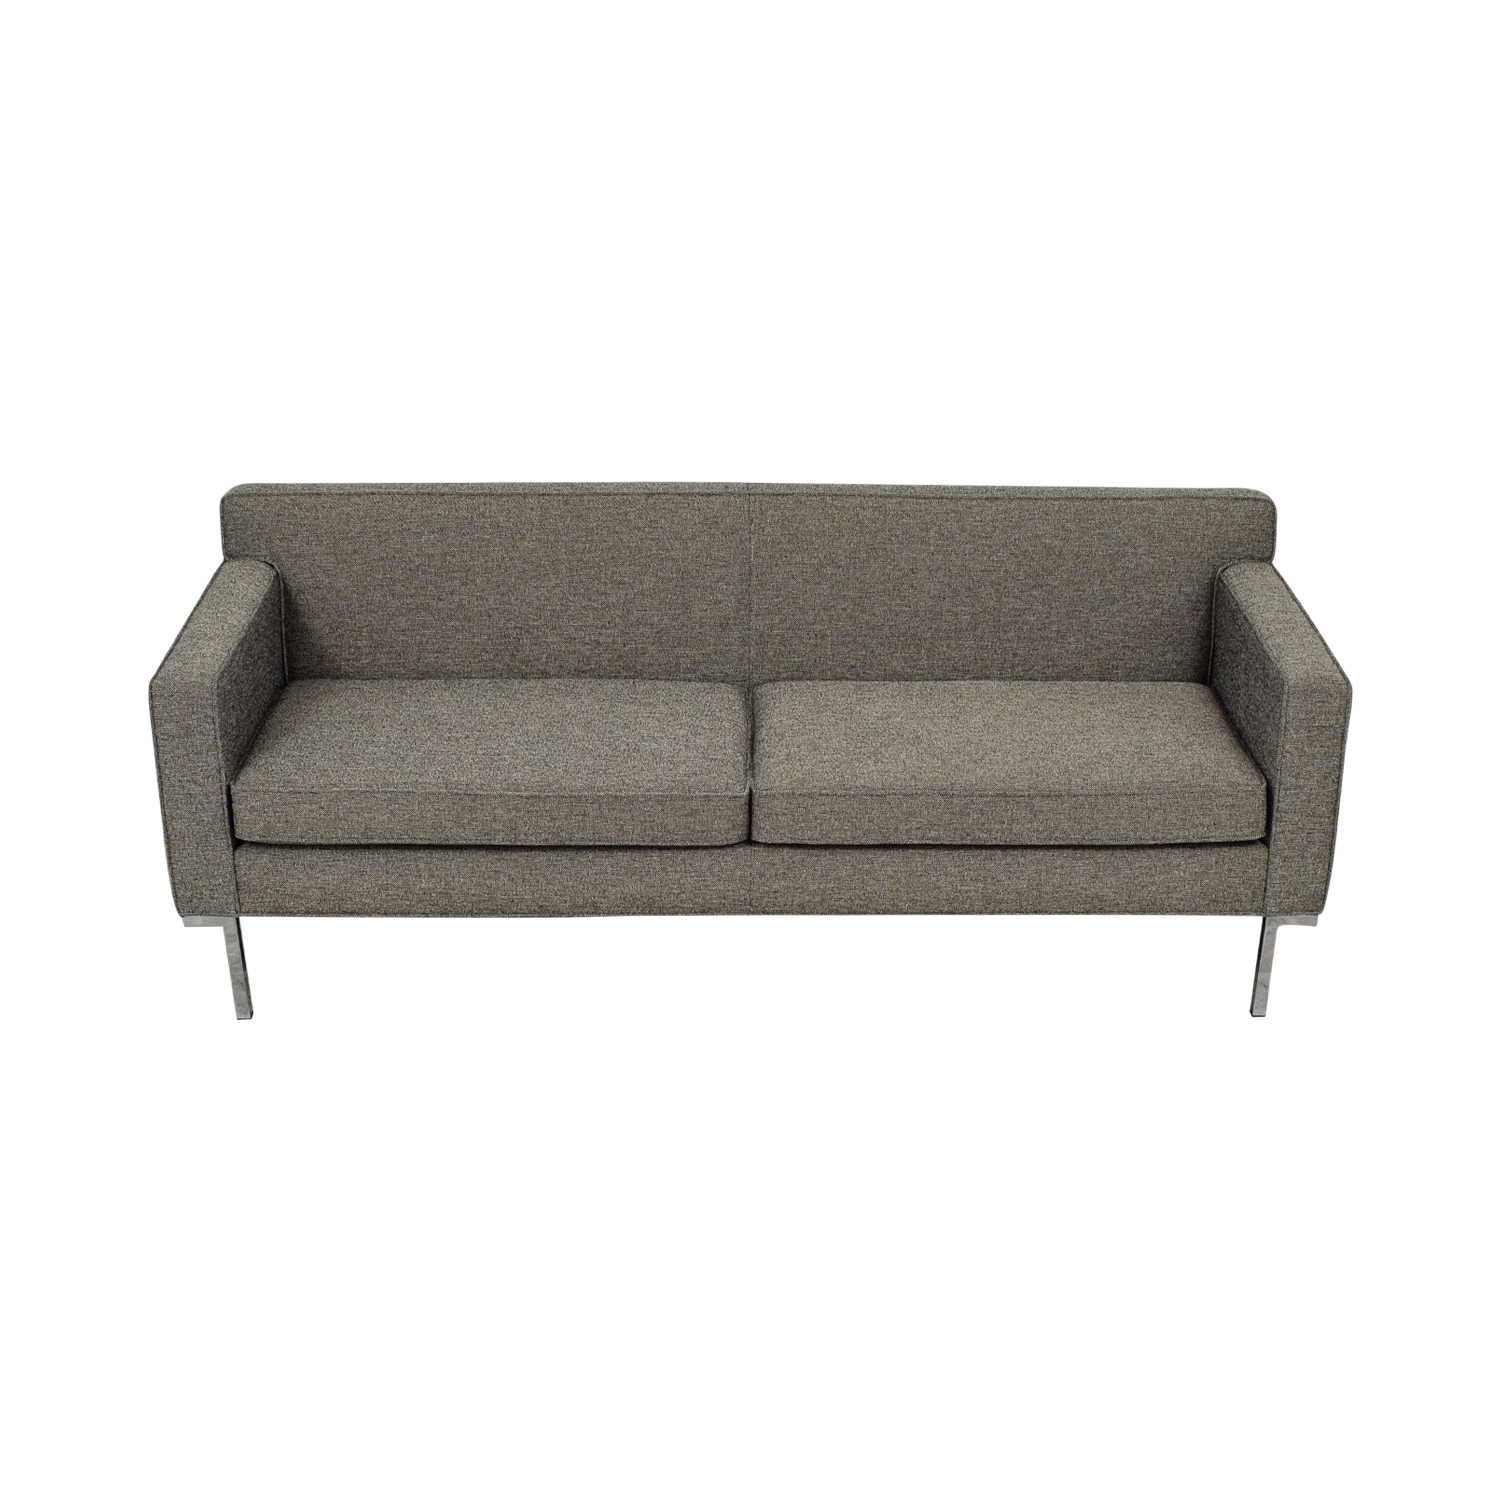 sofa classic best set under 30000 sofas used for sale